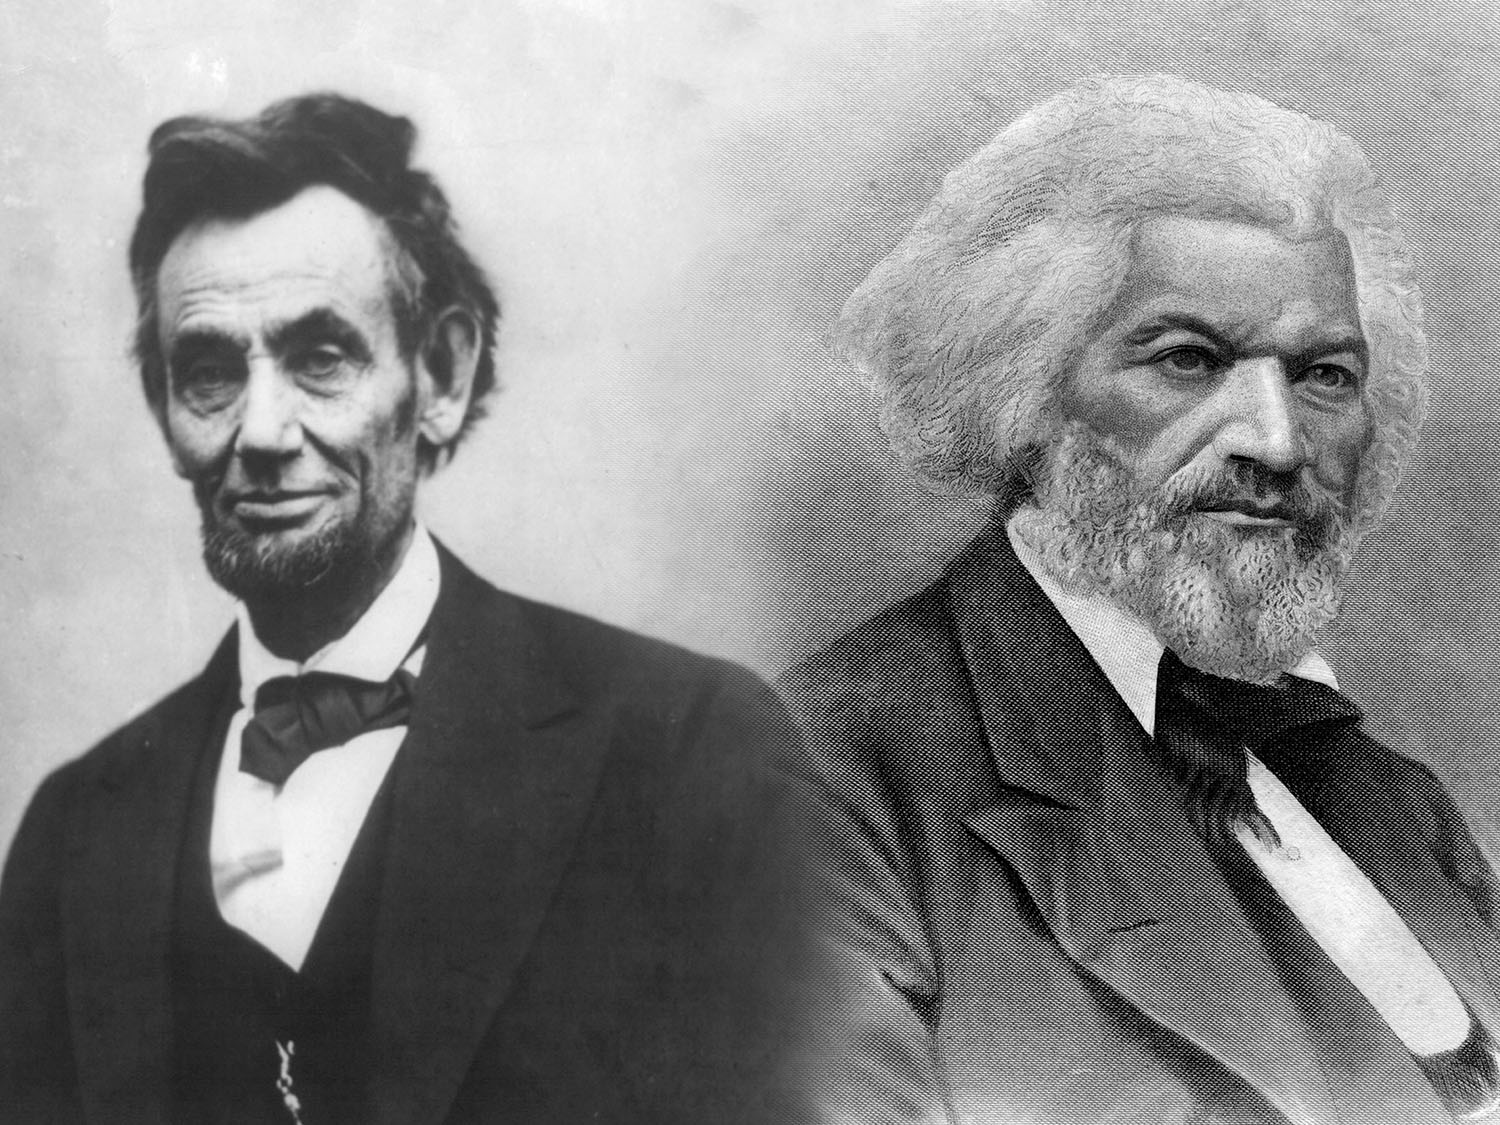 abraham lincoln leadership style essay Personal leadership style essay - professional writers, quality services, timely   how you can be great leaders use their institutions from abraham lincoln, and.